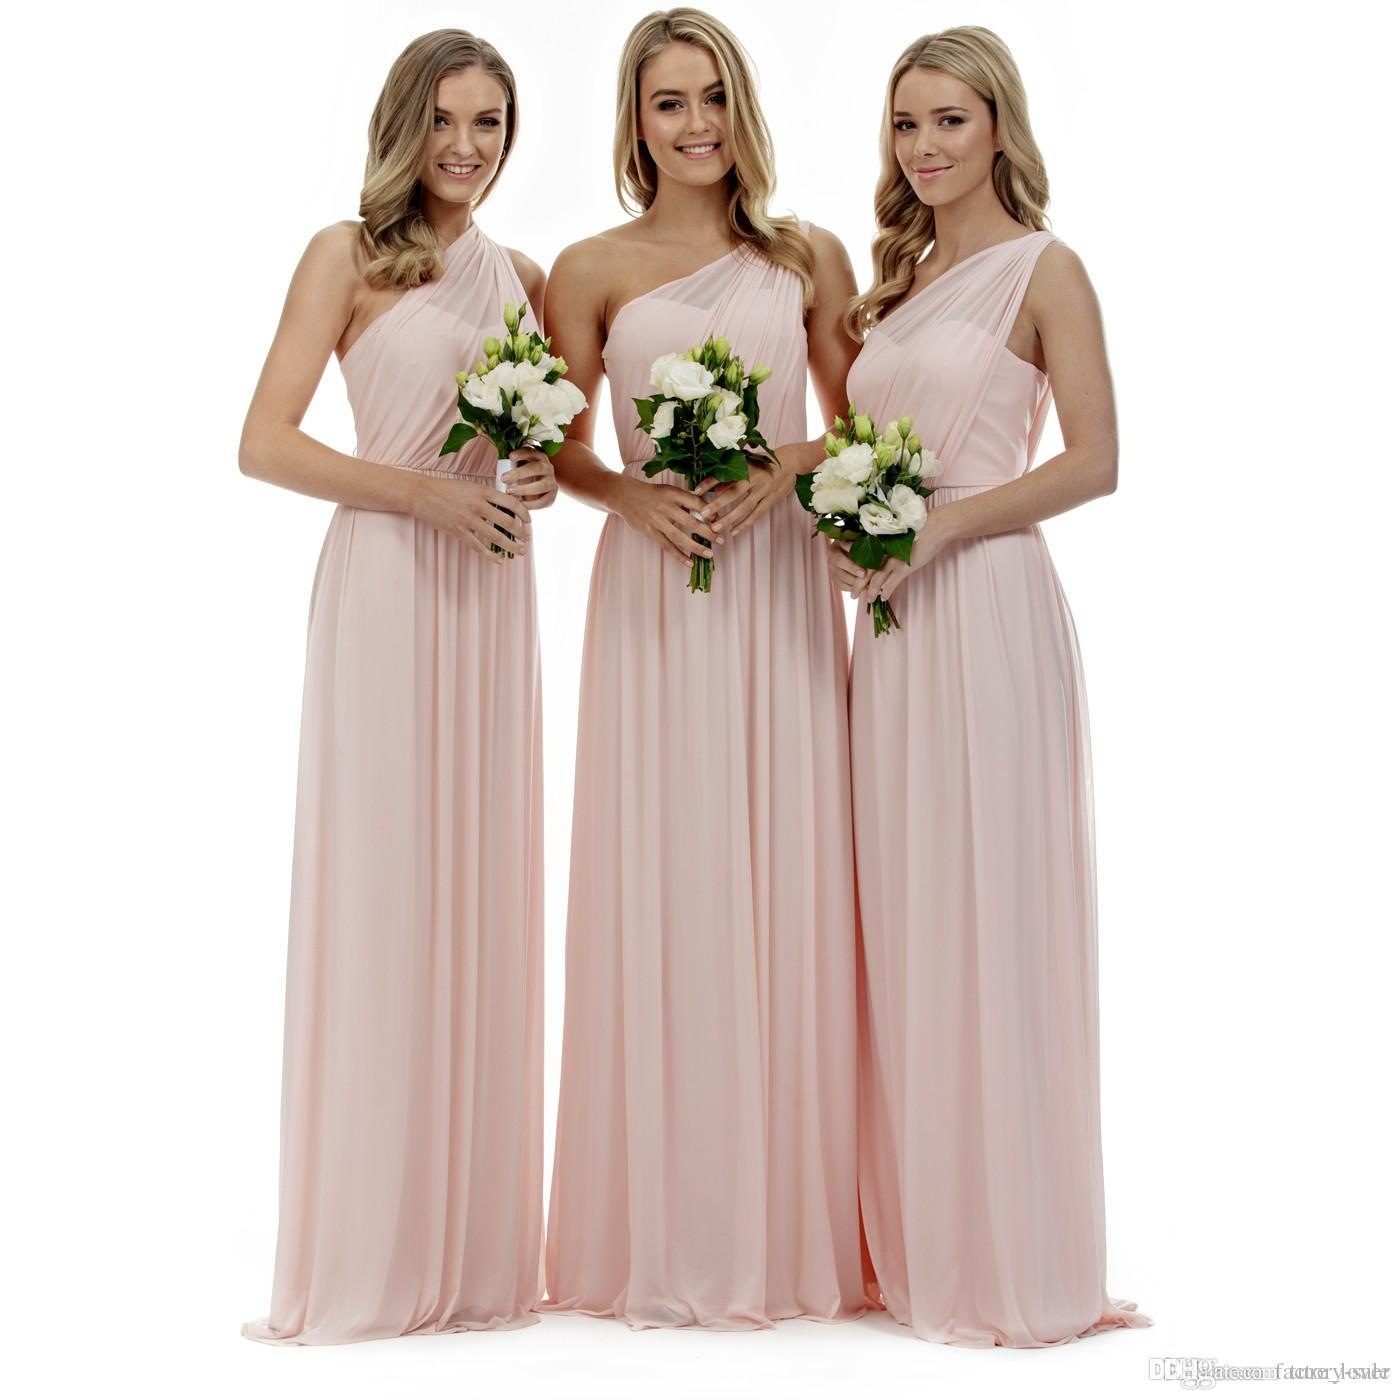 2017 blush pink one shoulder bridesmaid dresses a line chiffon 2017 blush pink one shoulder bridesmaid dresses a line chiffon pleats floor length bridesmaids gowns for summer country weddings childrens bridesmaid ombrellifo Image collections